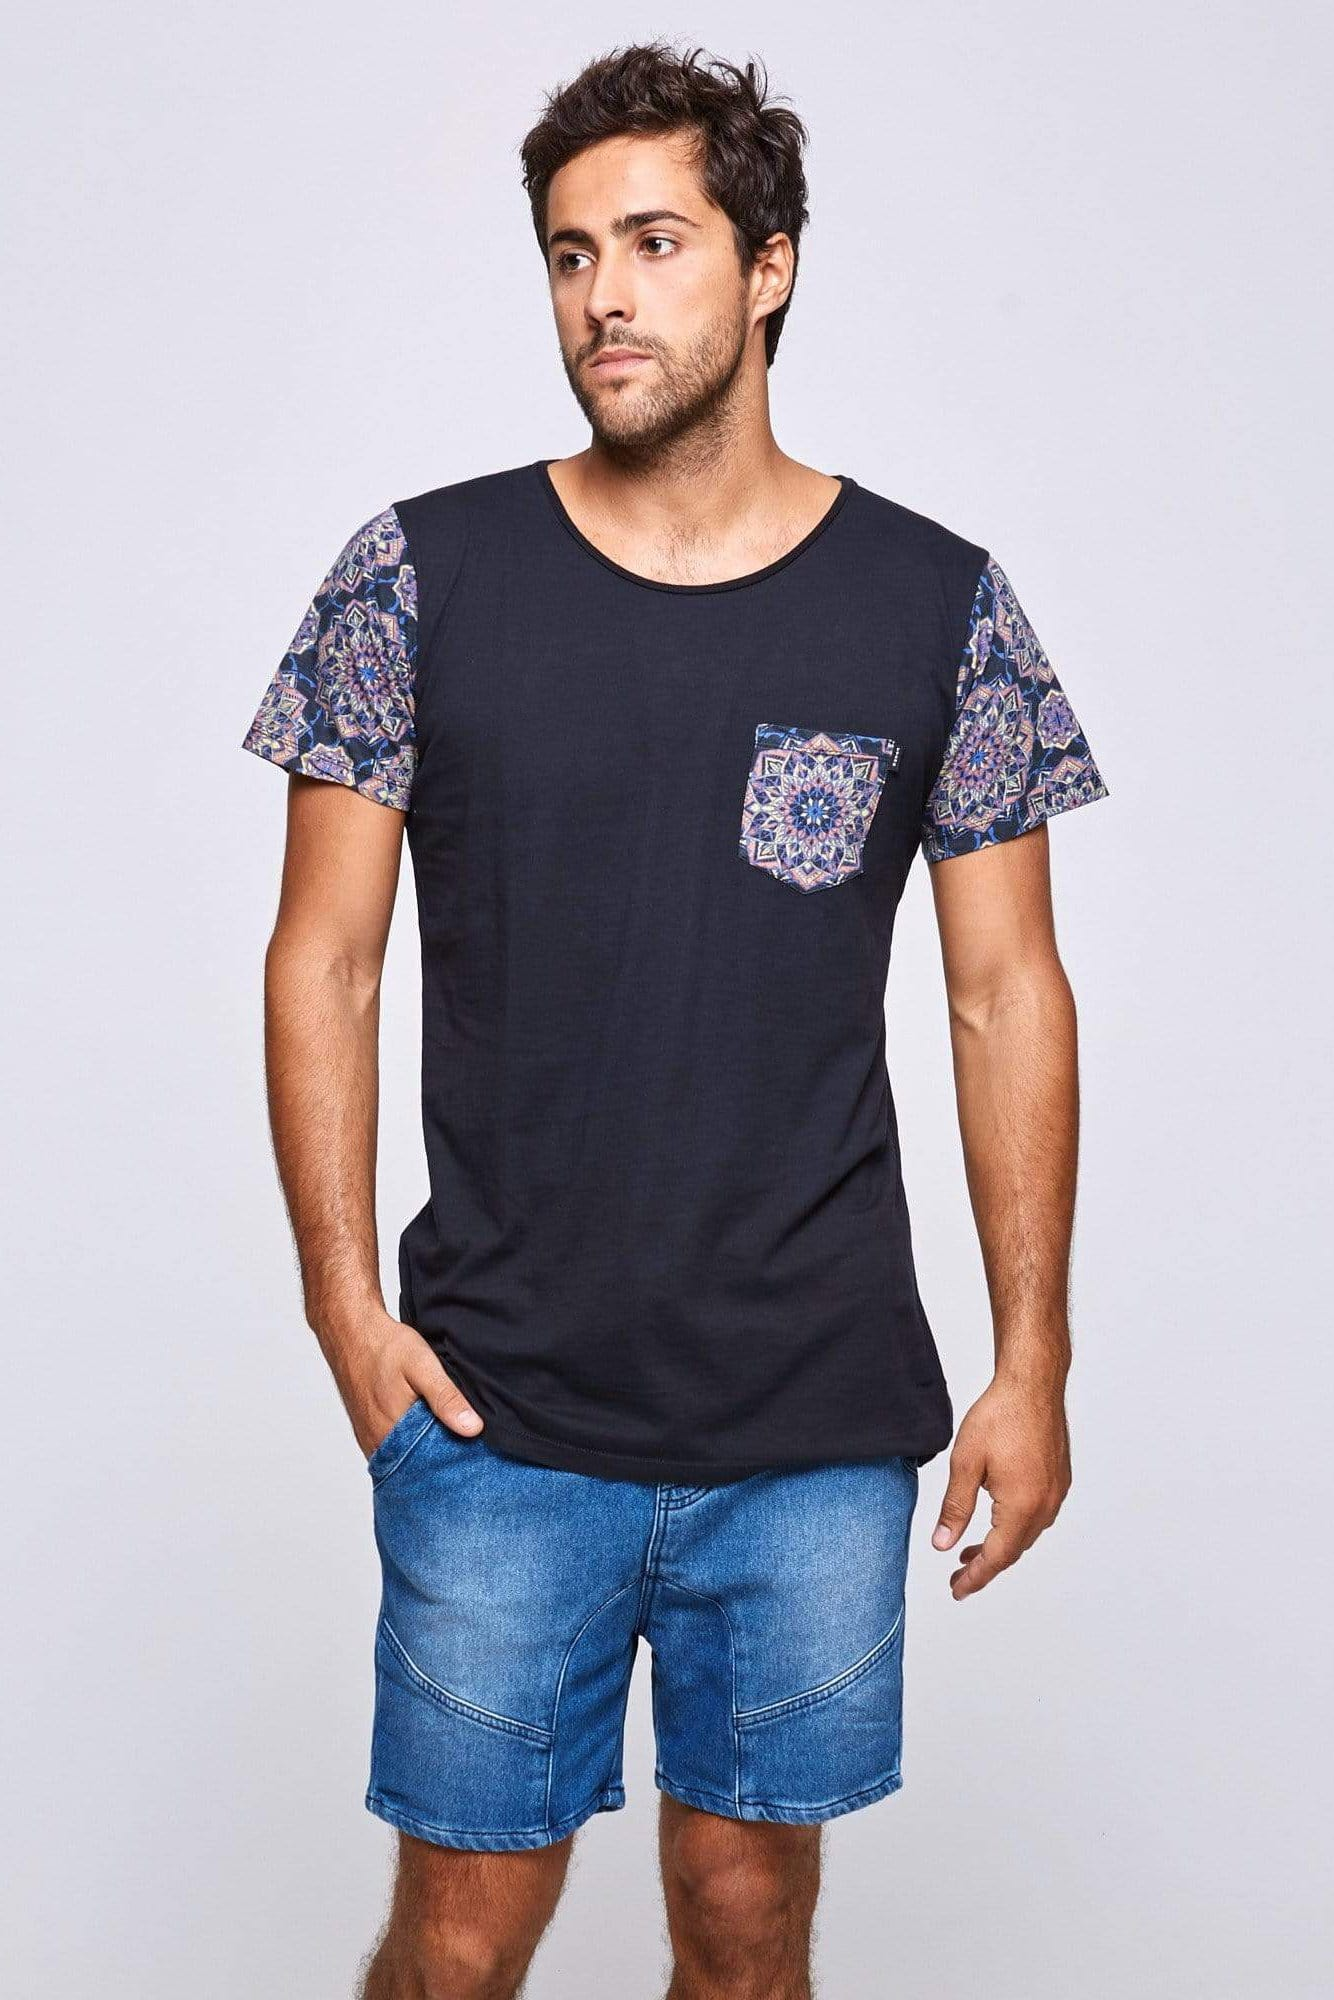 Ctzn Tee Mandalas Pocket - Man T-Shirt - CITIZENS